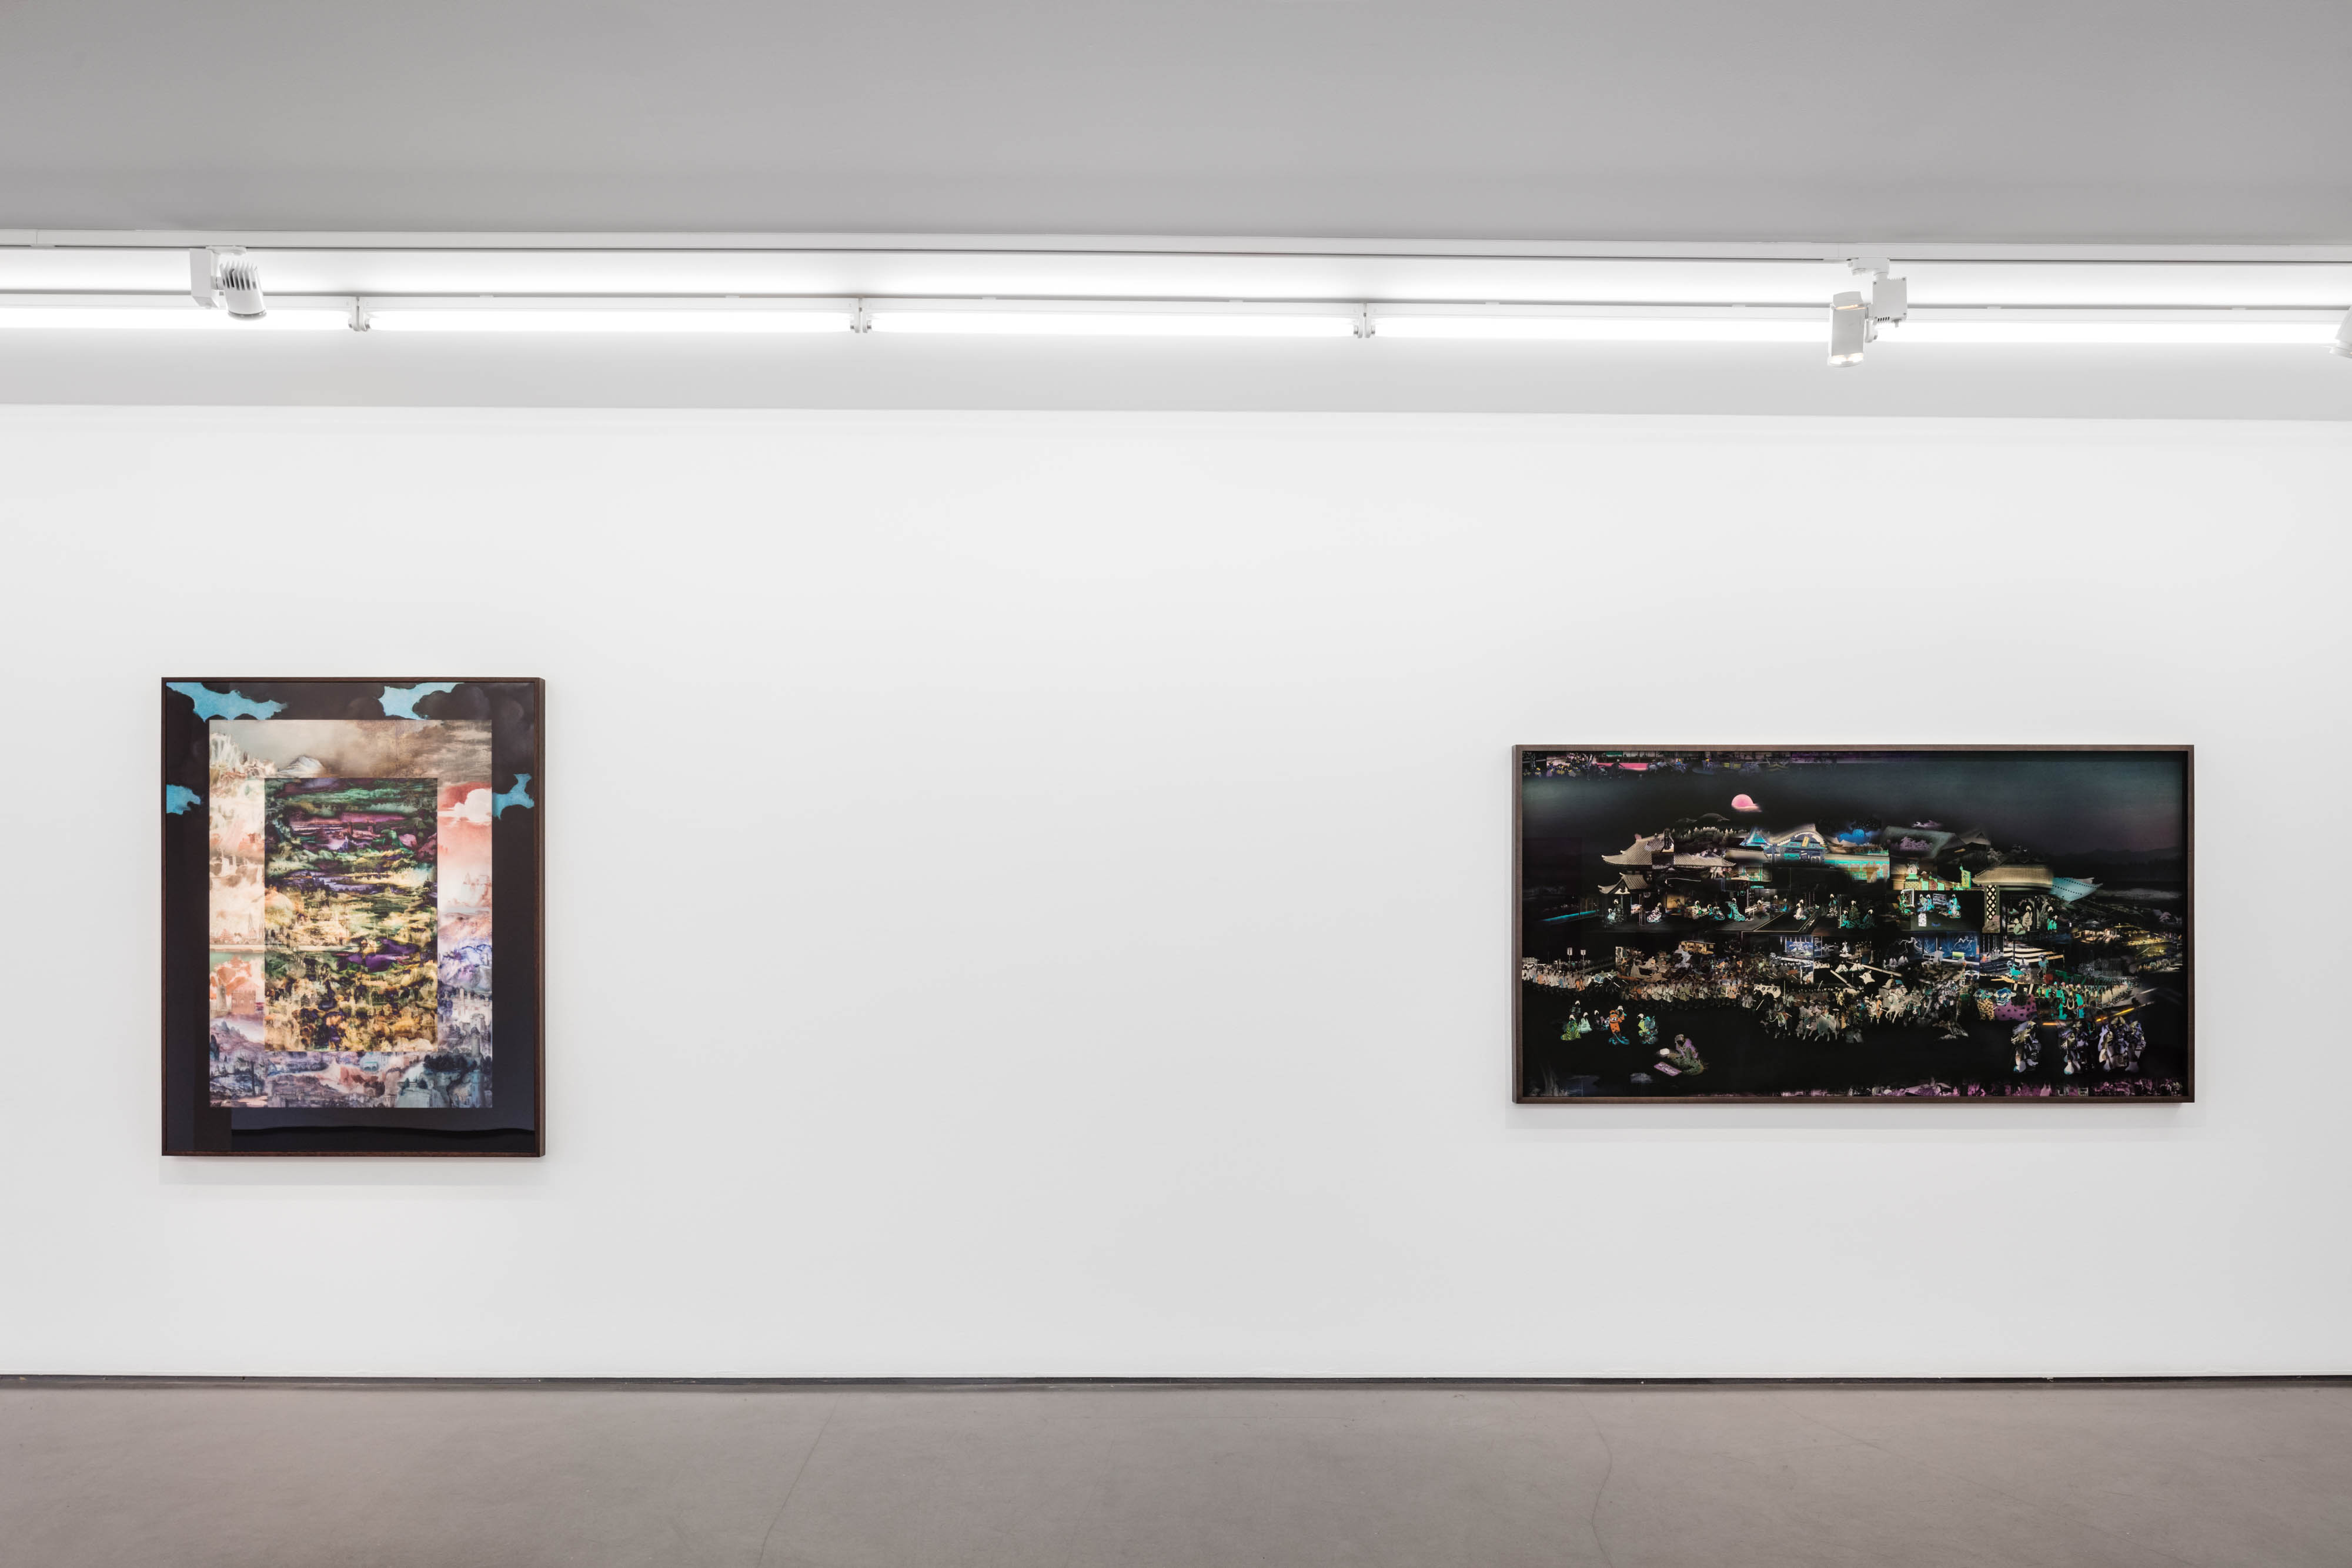 Installation view, David Molander, Elfenbenstornen, 2017, photo: Jean-Baptiste Beranger